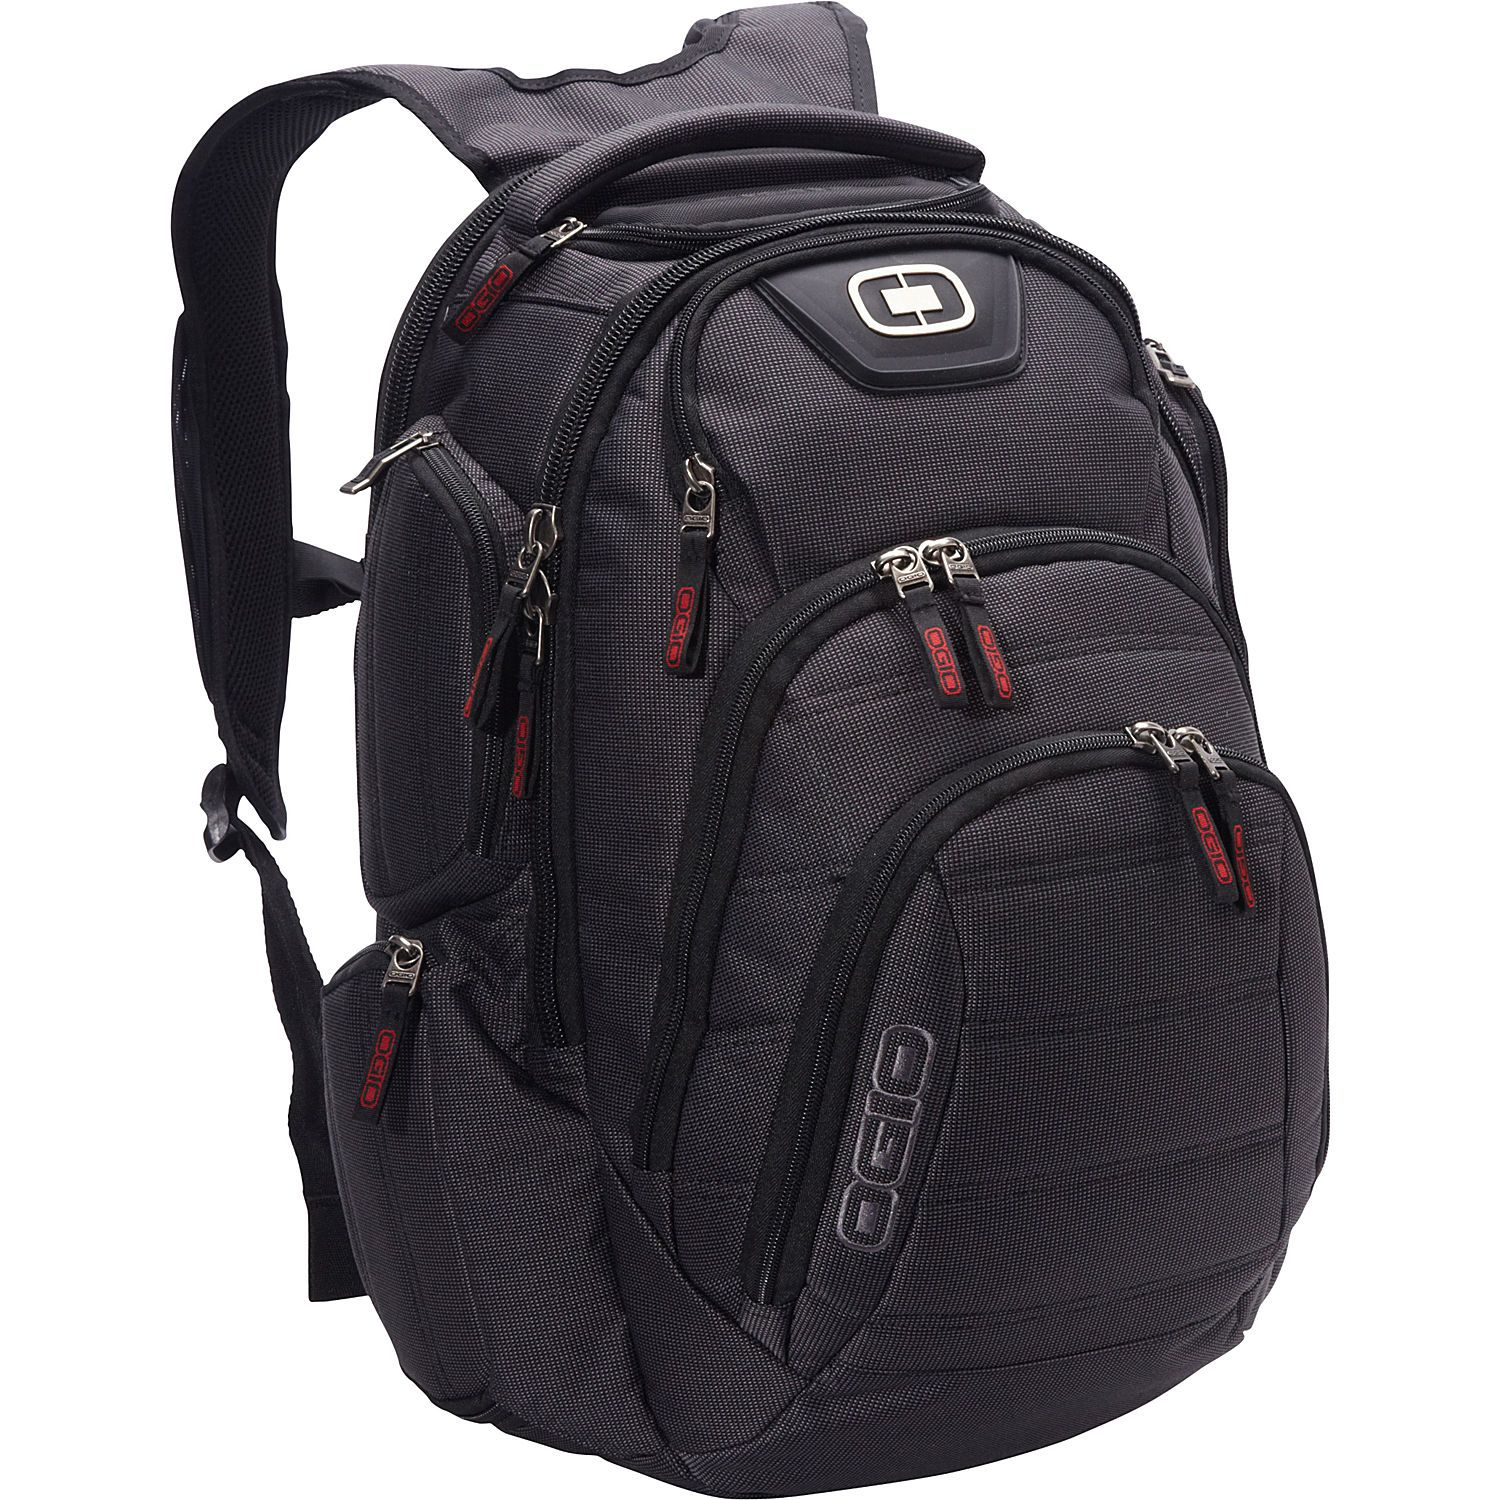 OGIO Renegade RSS 17 Pack - eBags.com $149.99 | Want | Pinterest ...